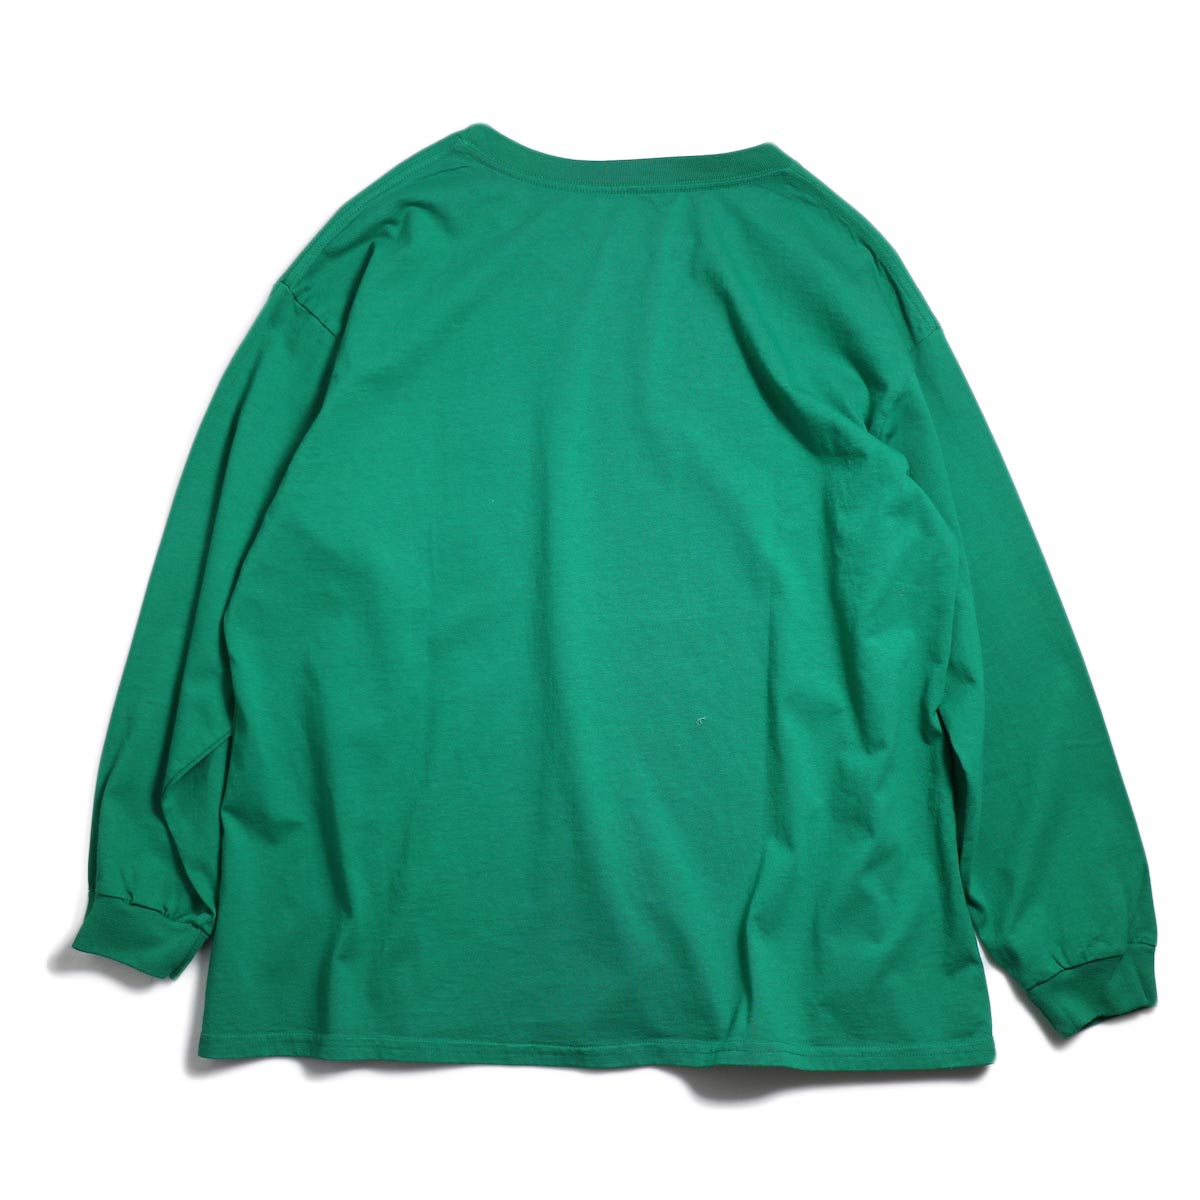 UNIVERSAL PRODUCTS / Heavy Weight L/S T-Shirt -Green 背面